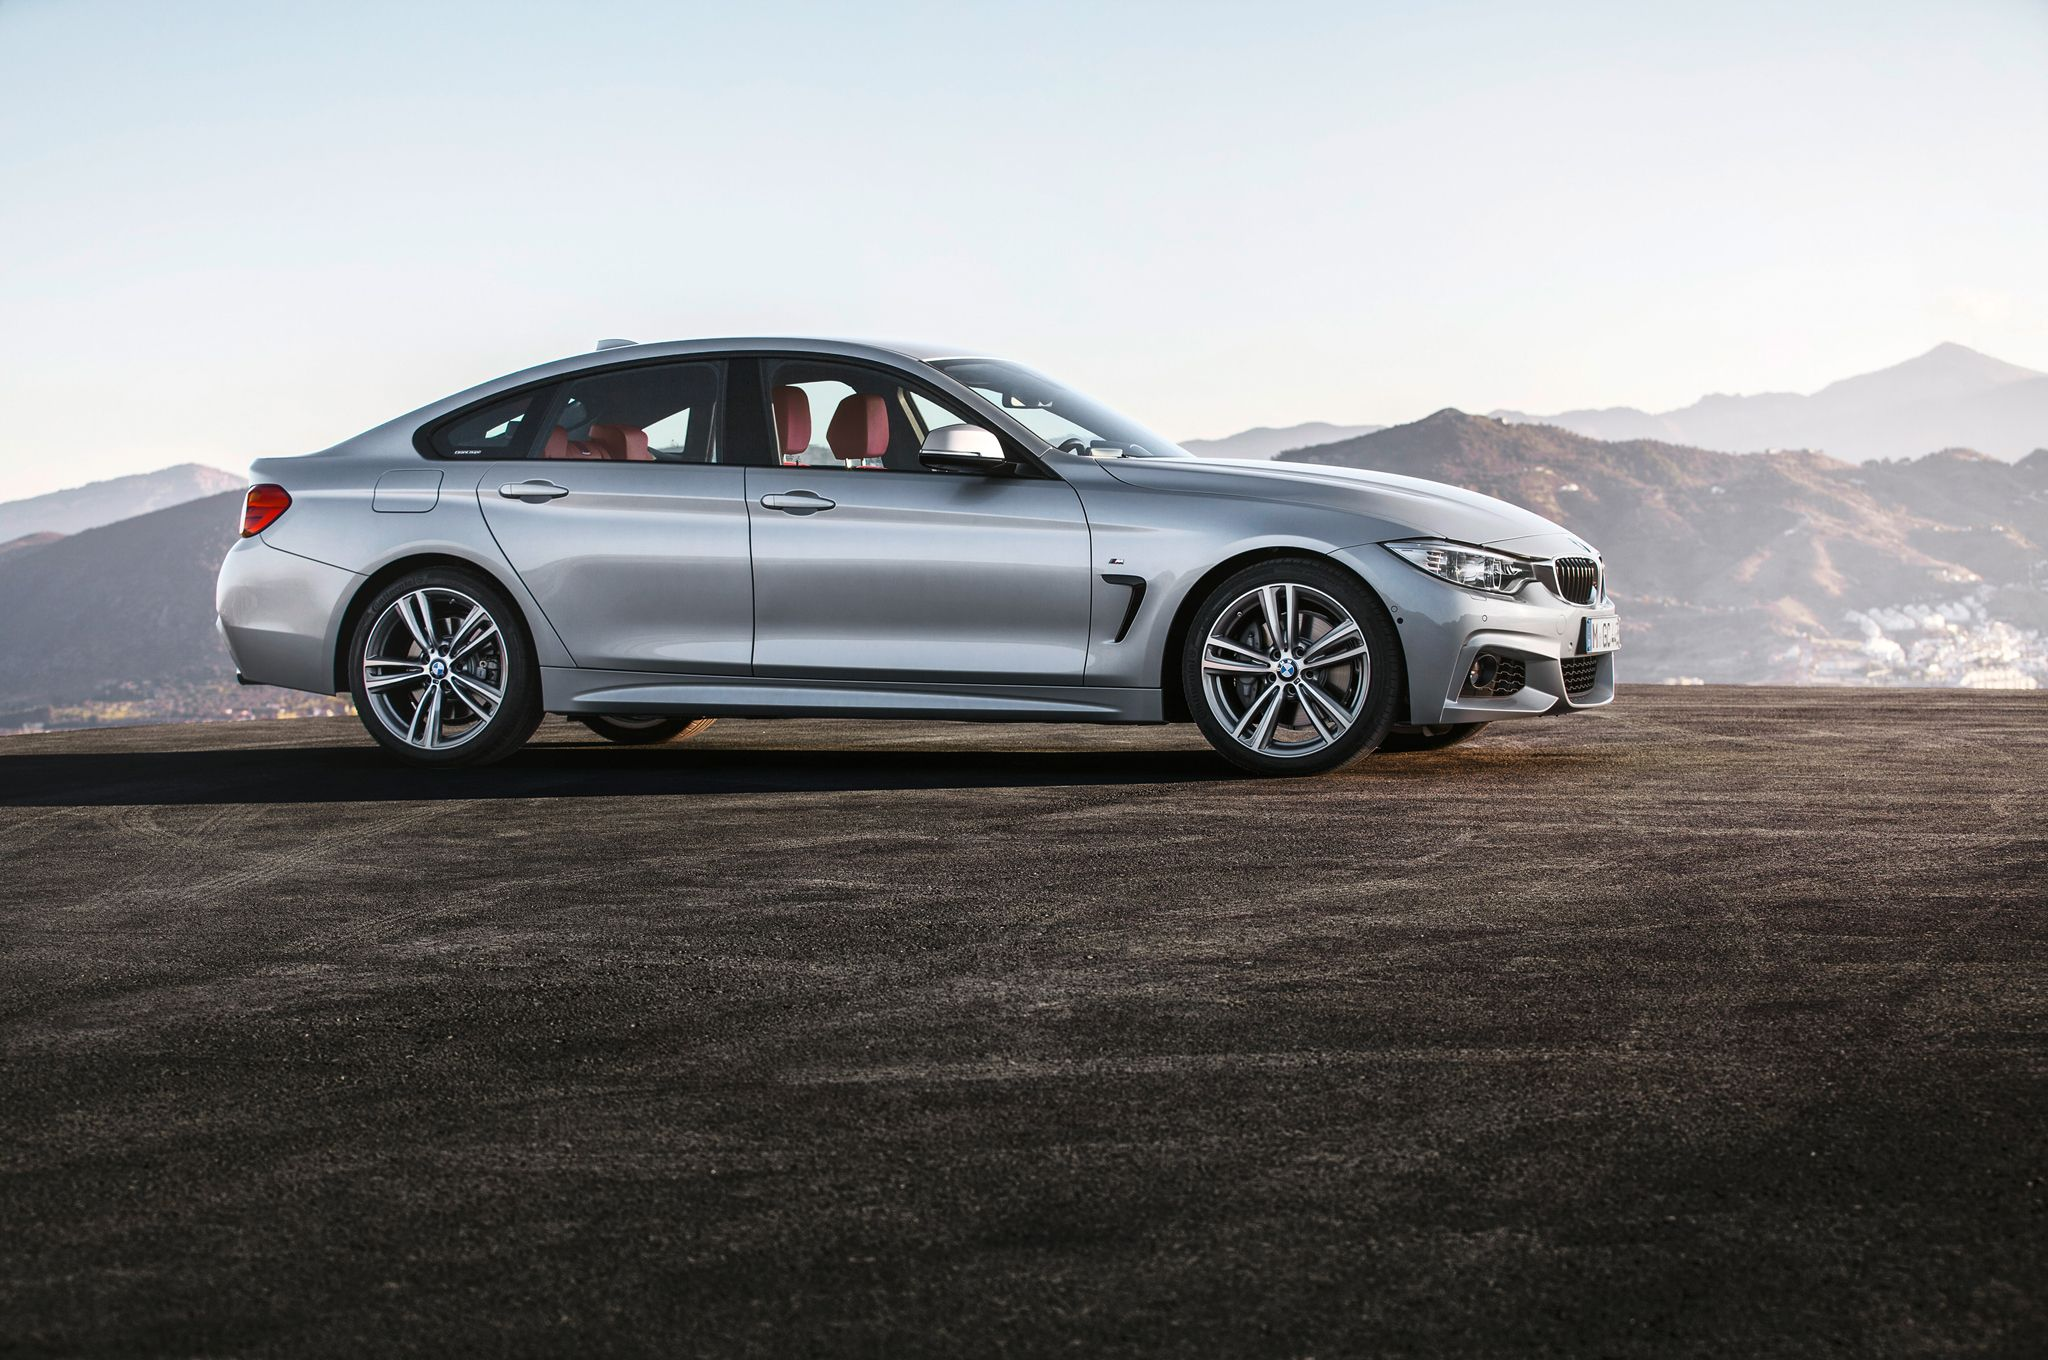 2015 Bmw 4 Series Gran Coupe Specs And Features Announced Bmw 4